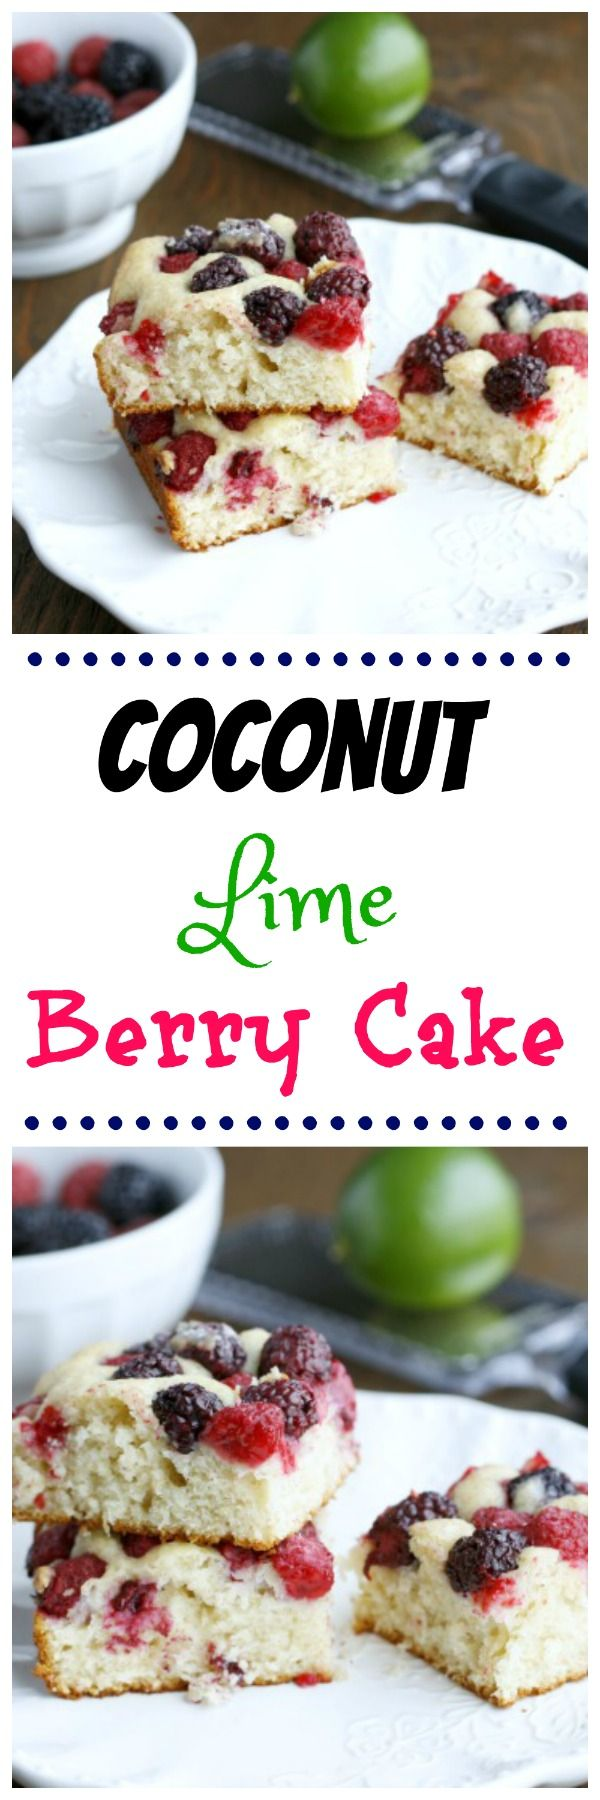 Coconut Lime Berry Cake. A simple and delicious cake to enjoy the ...